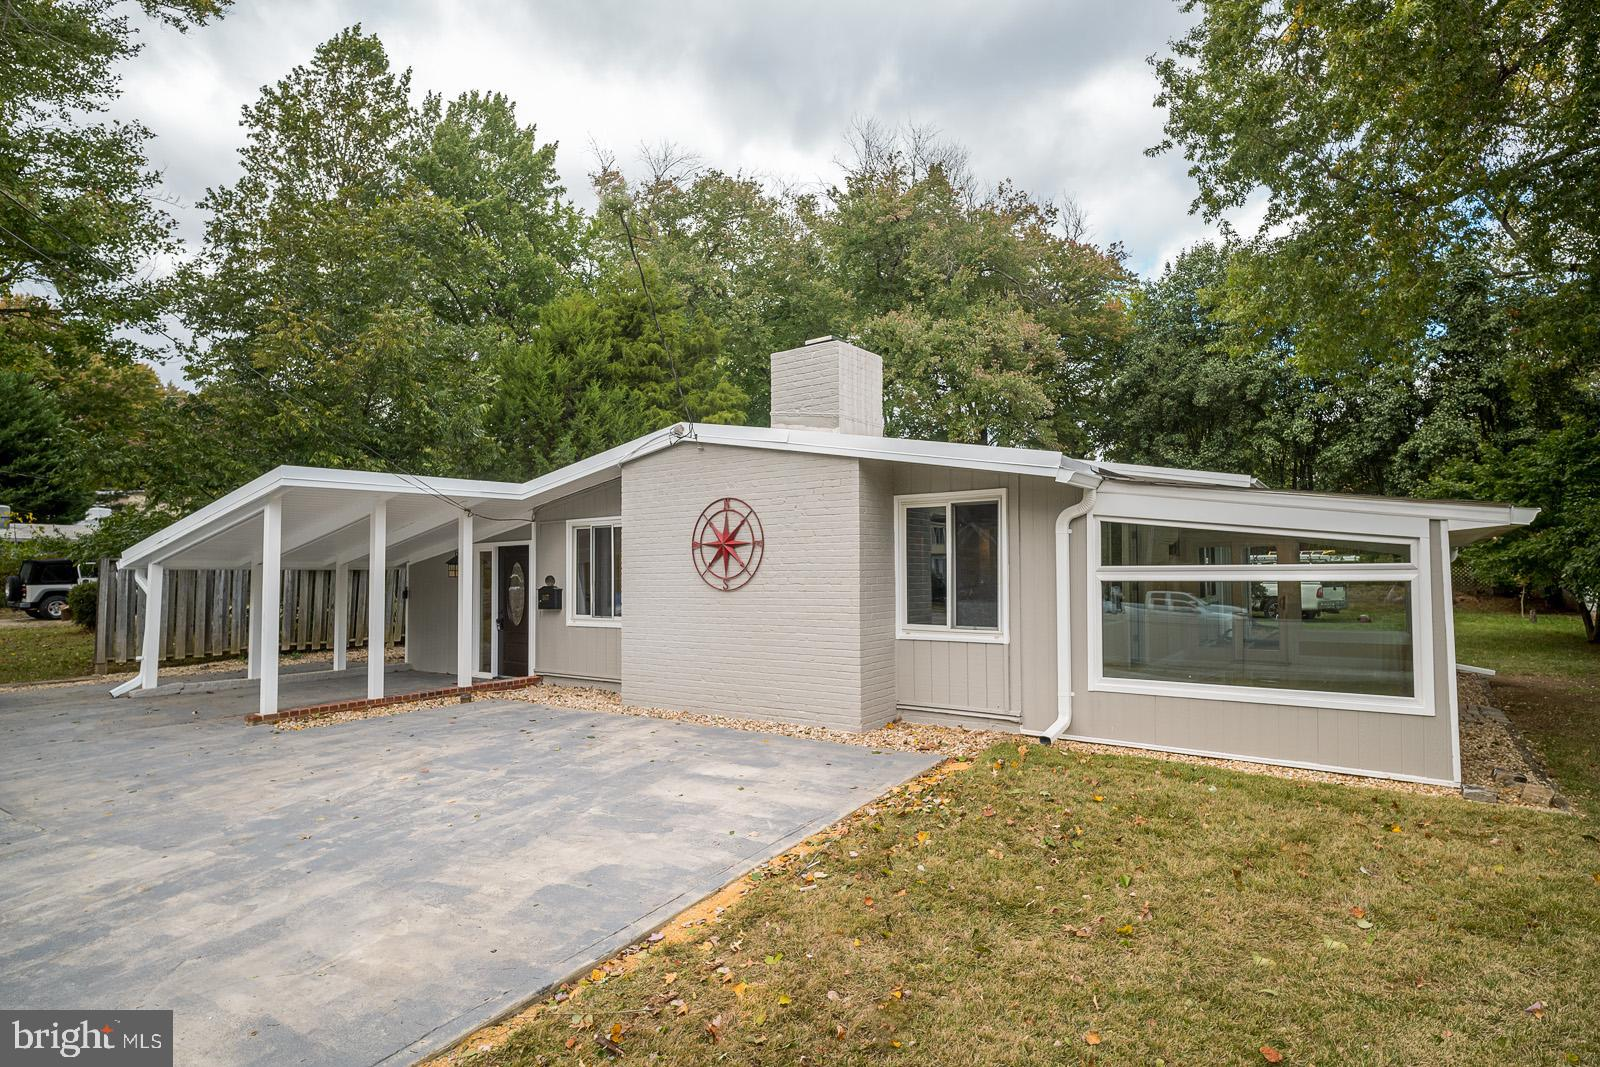 Sought after Mid-Century Contemporary on 1/4 acre +. 1600 sq ft - FULLY RENOVATED. Large year-round